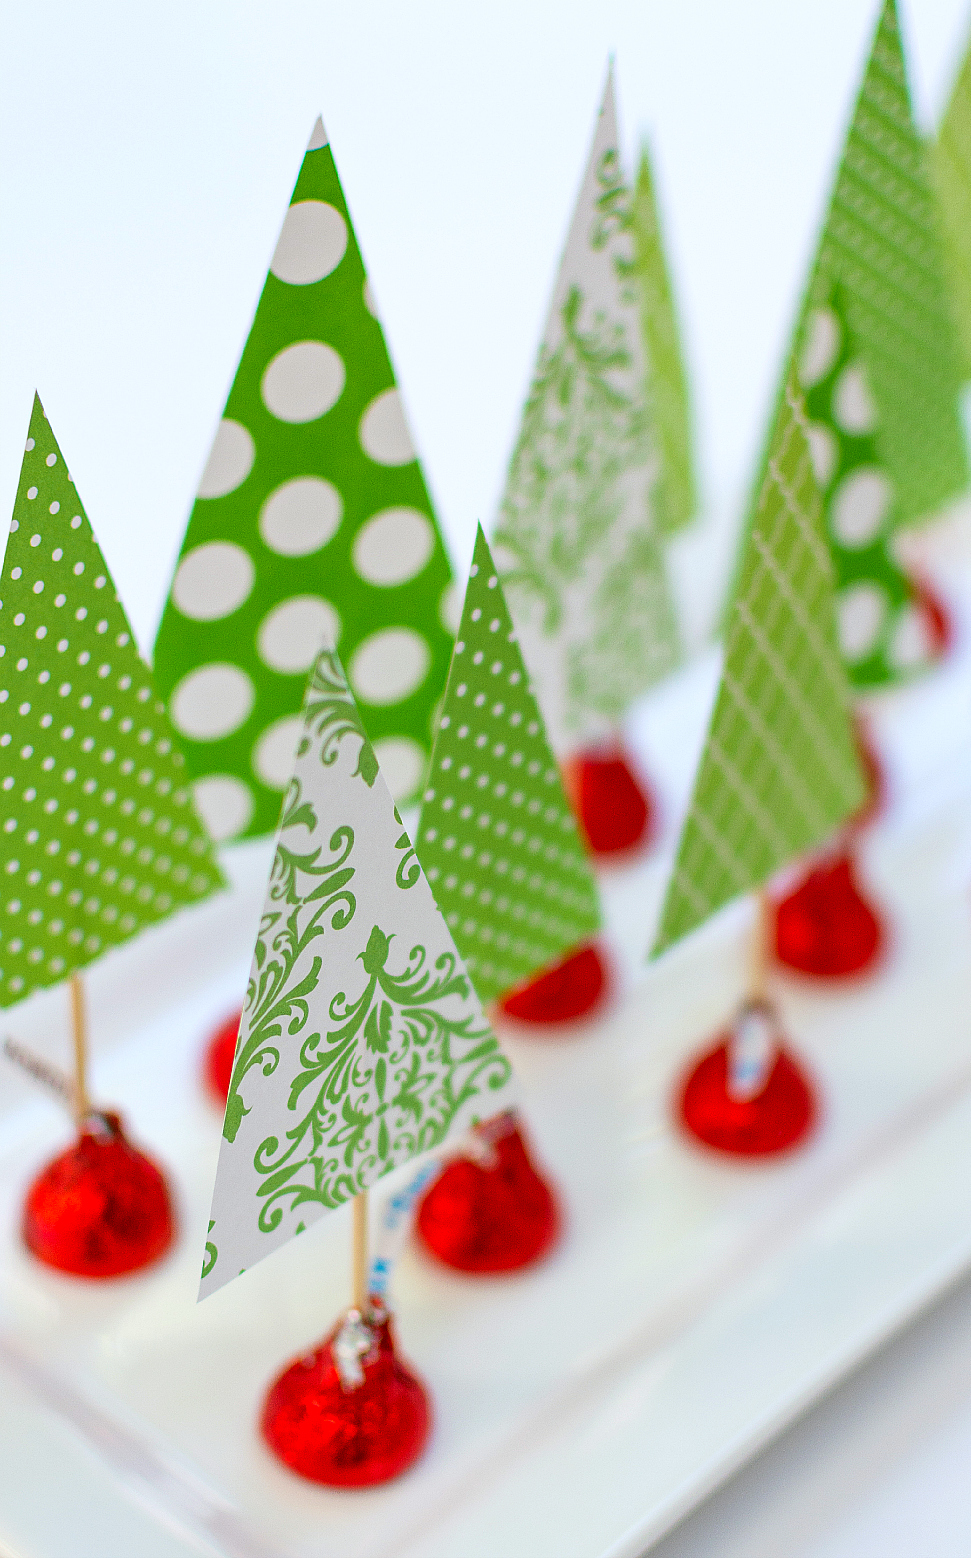 38 hershey kiss trees - Christmas Dinner Decorations